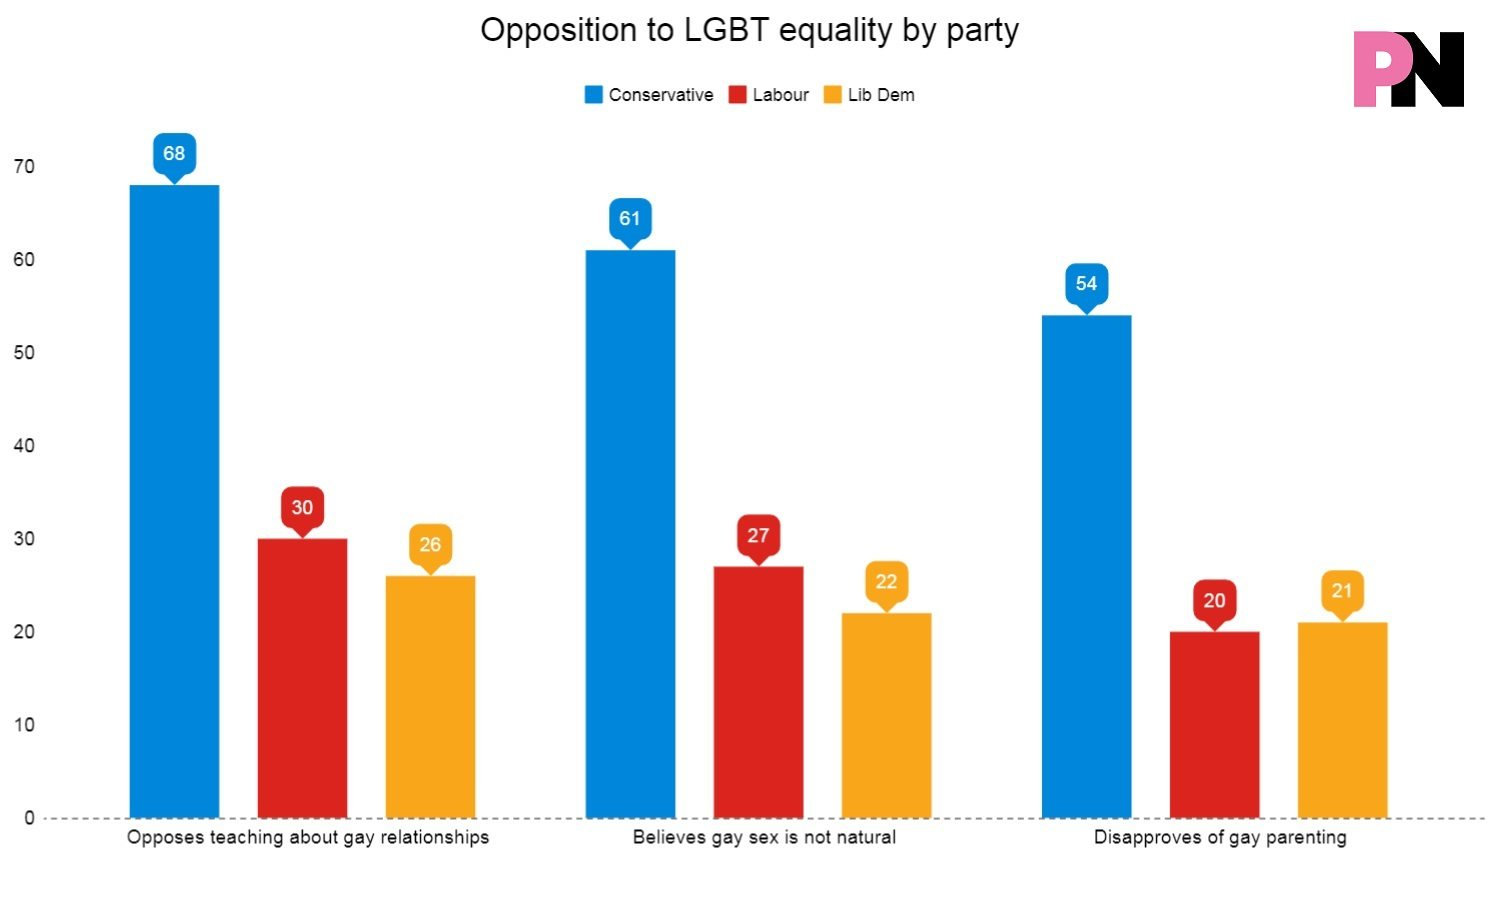 Opposition to equality by party